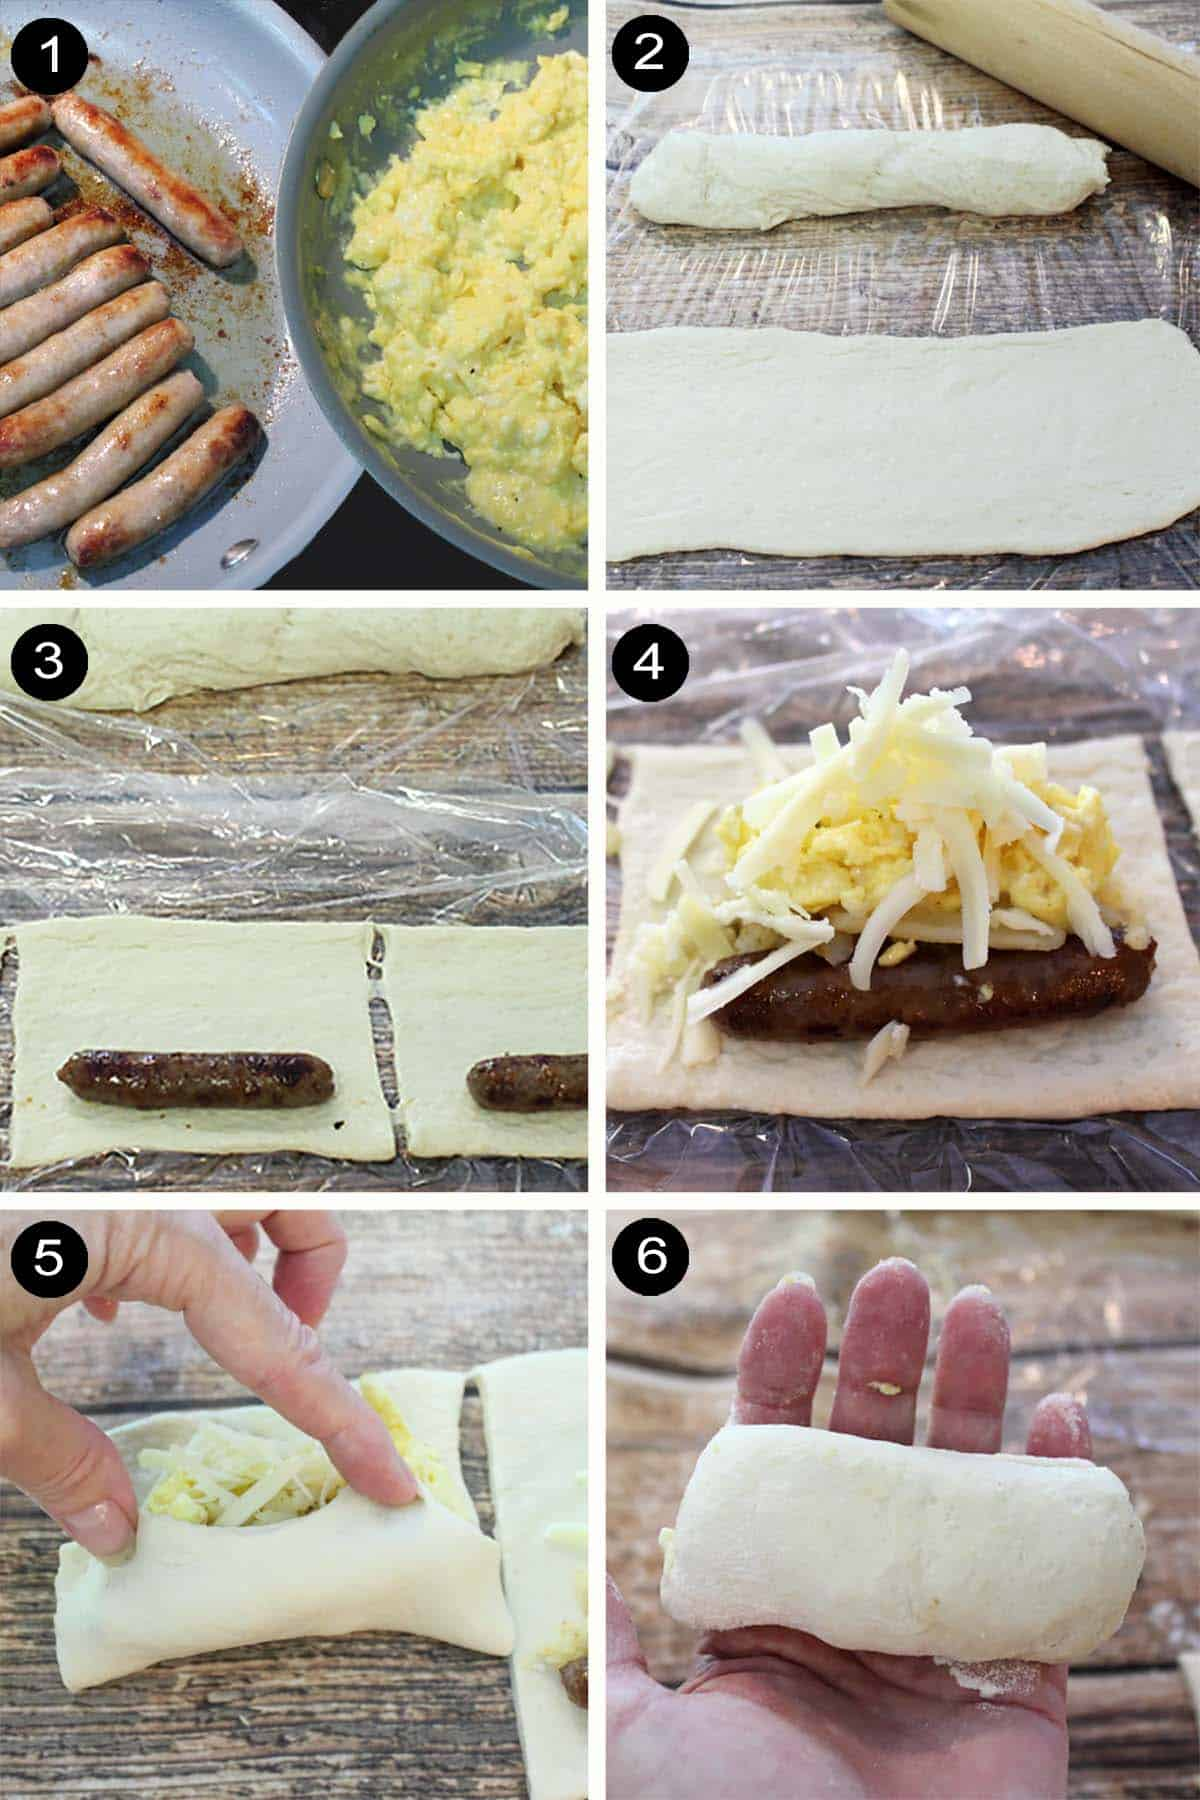 Steps on how to make savory kolaches.